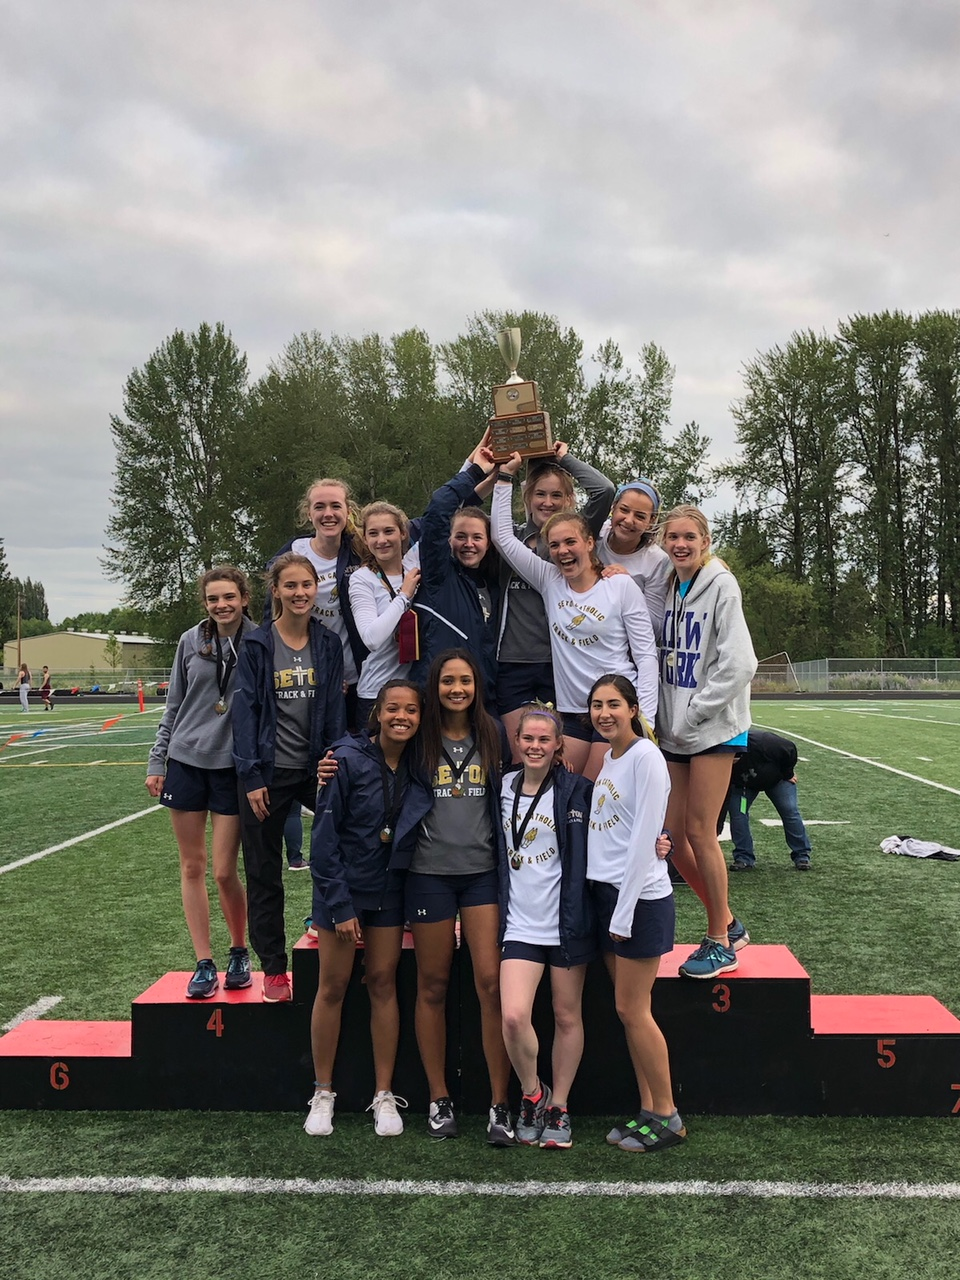 Girls Track District 4 Champions! State Academic Champs!